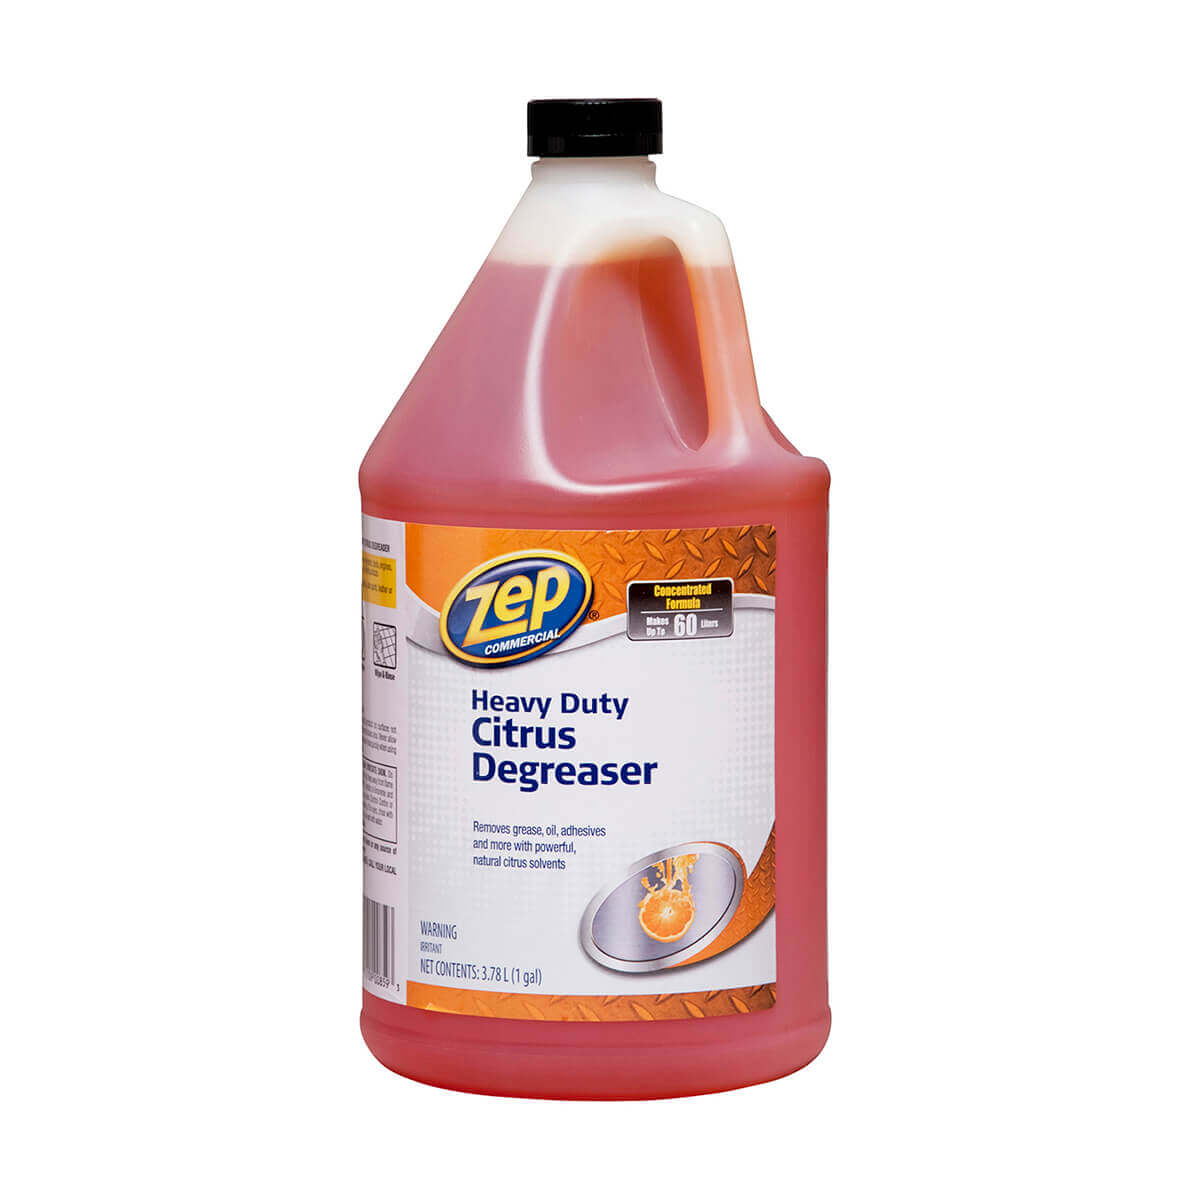 Zep Commercial Heavy Duty Citrus Degreaser 3.78 L - CACIT128